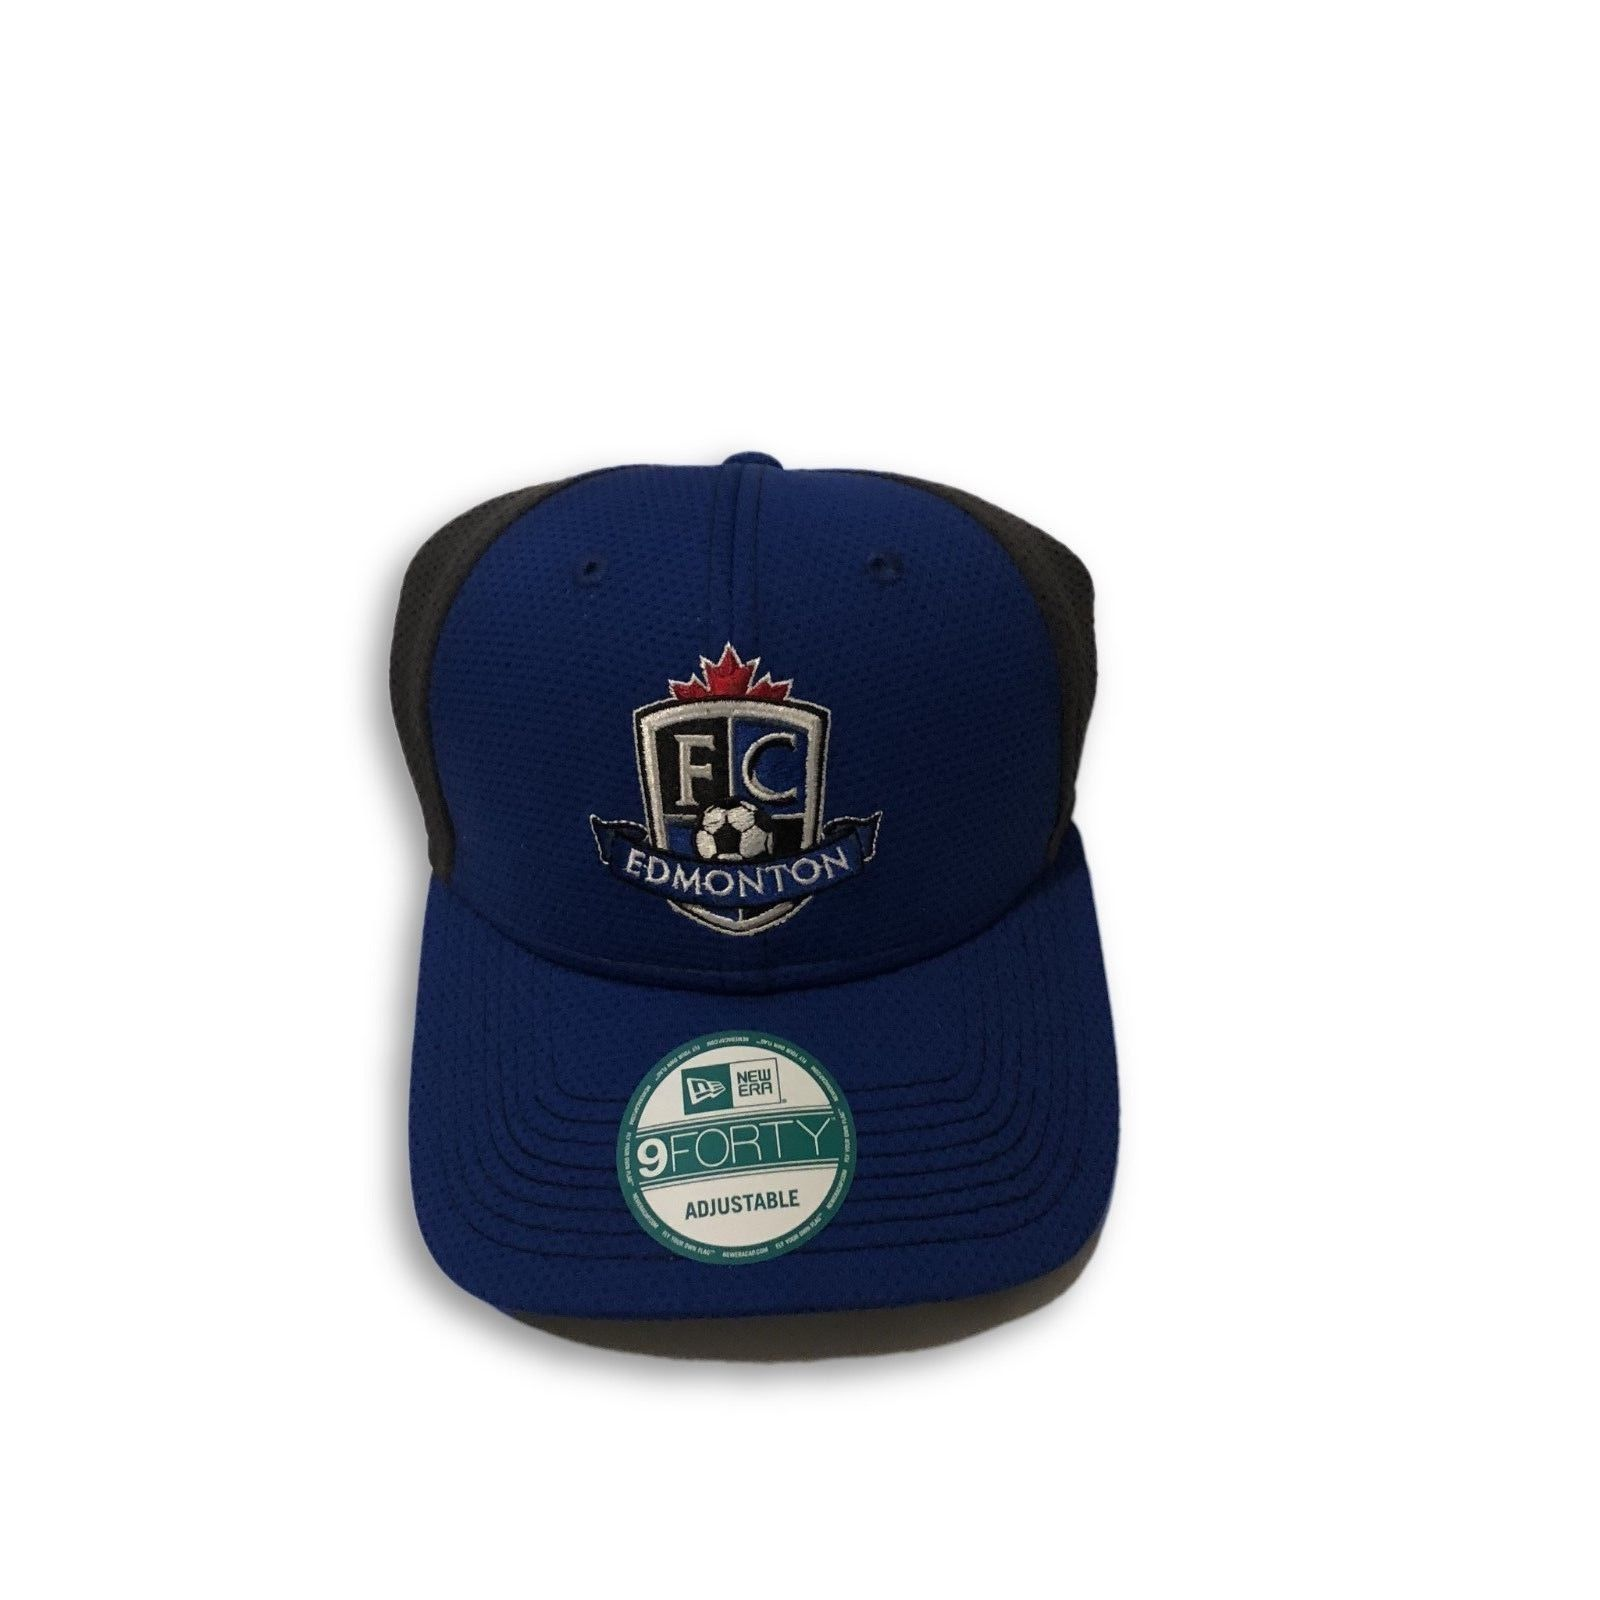 NWT New FC Edmonton New Era 9Forty NASL Adjustable Hat